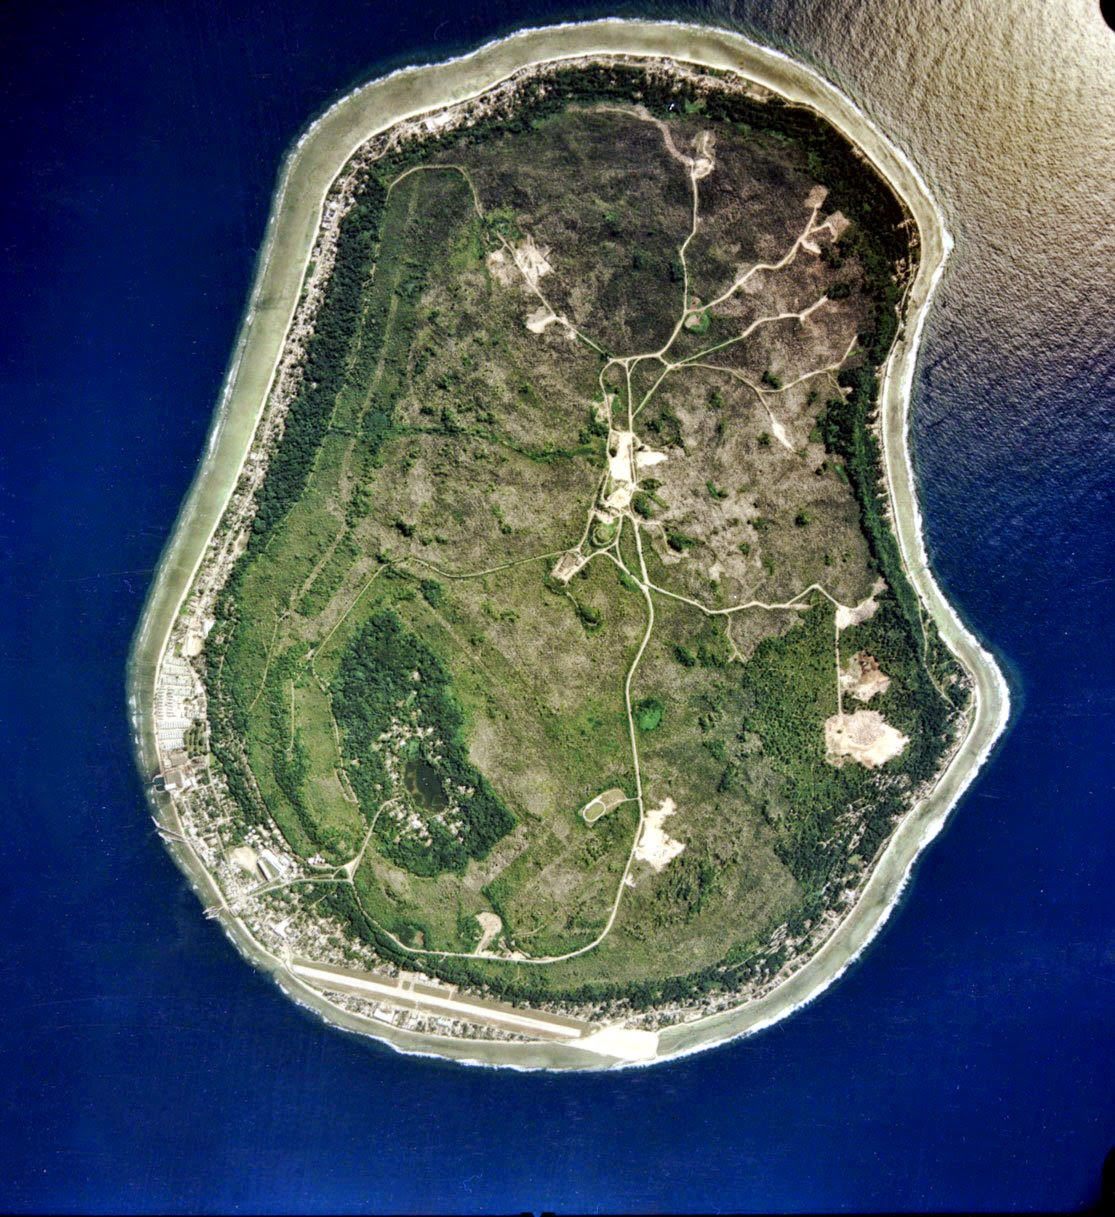 NAURU, SOUTHWESTERN PACIFIC 10 Most Beautiful Island Countries in the World